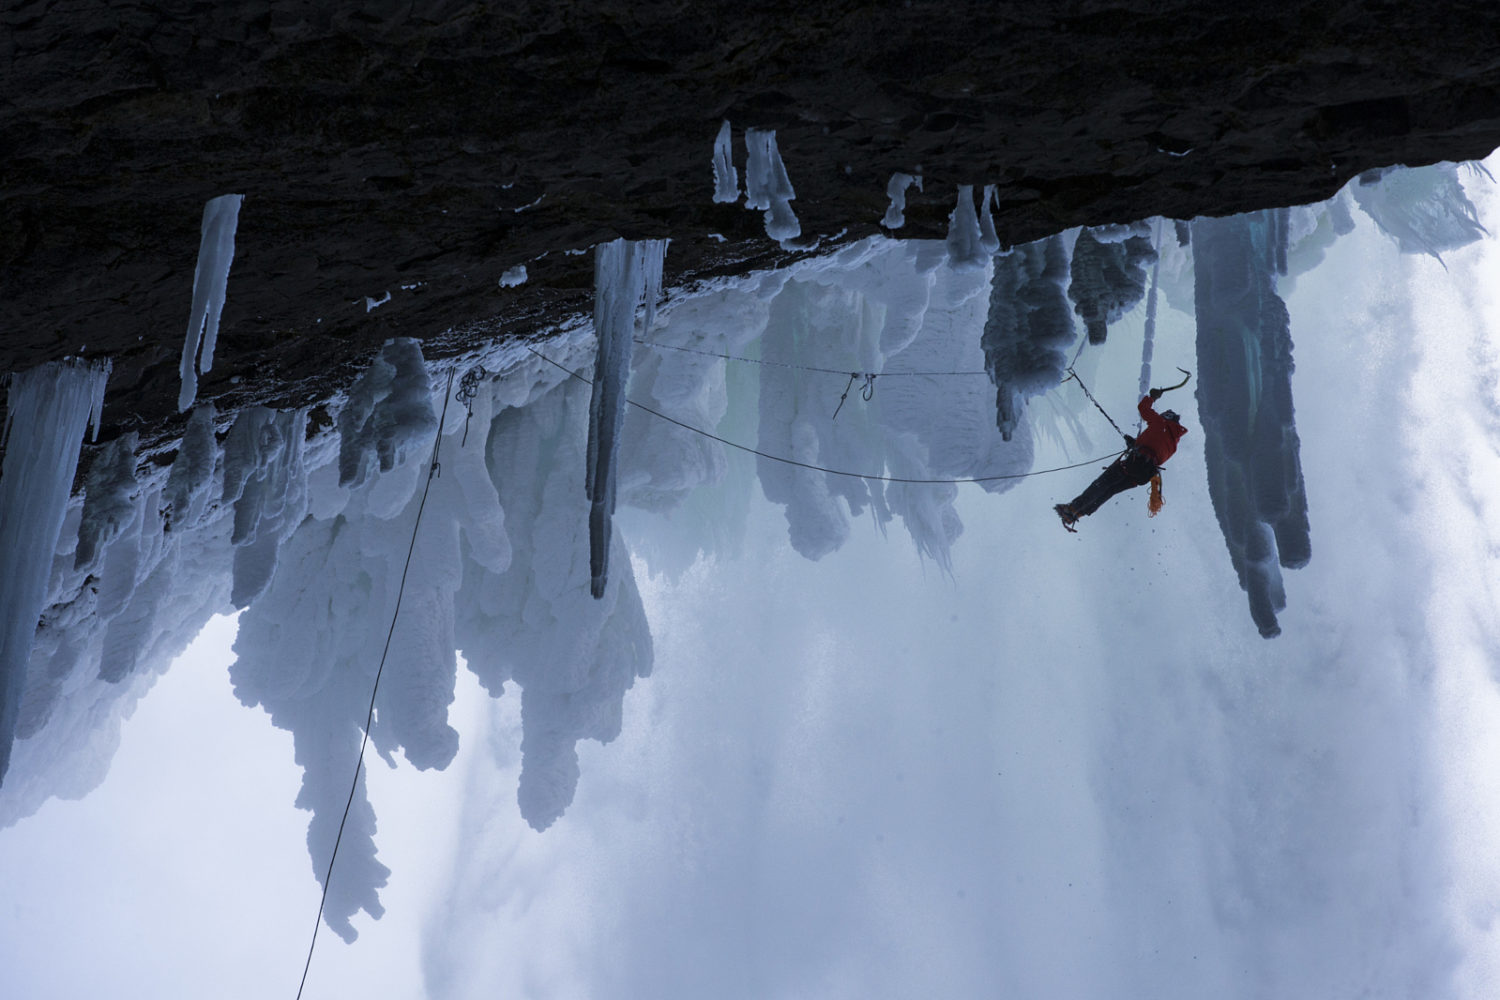 Rock Climbing Photography: What It Takes To Capture Epic Climbs